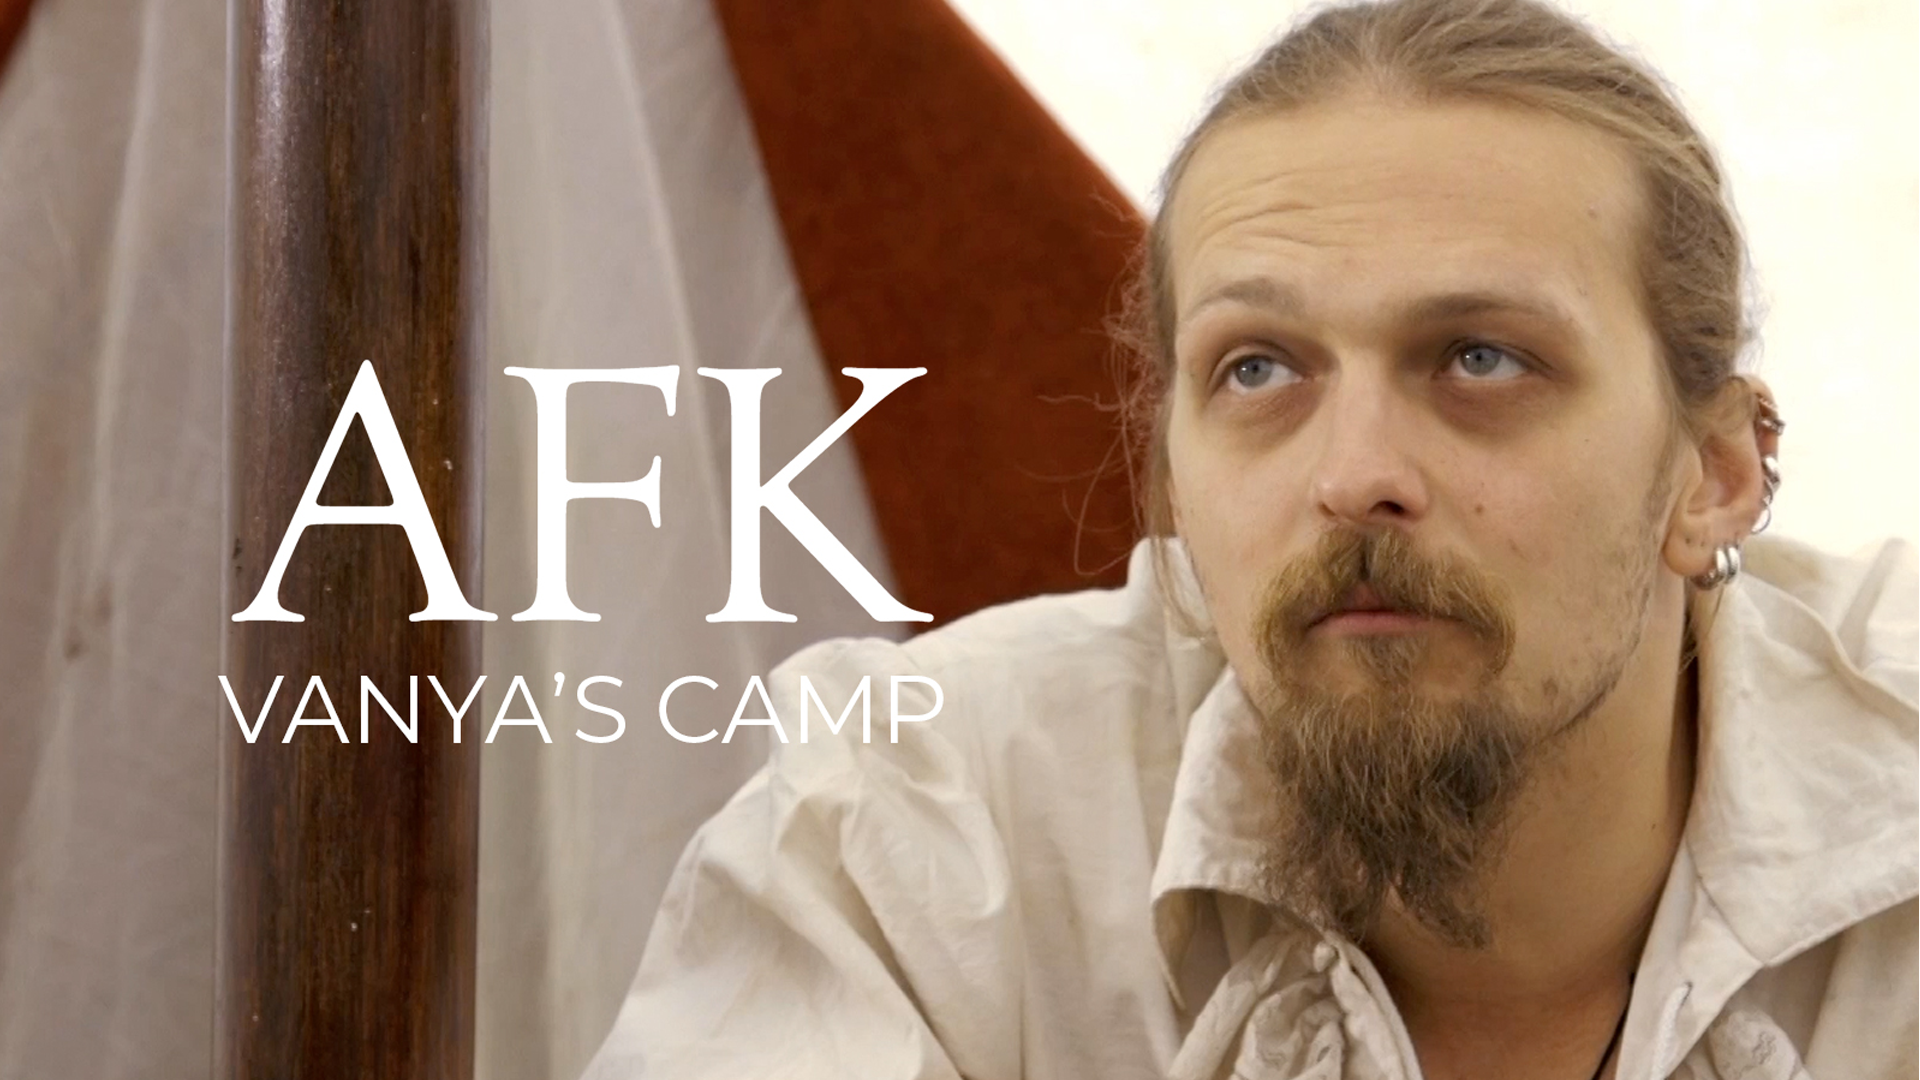 AFK Vanya's Camp